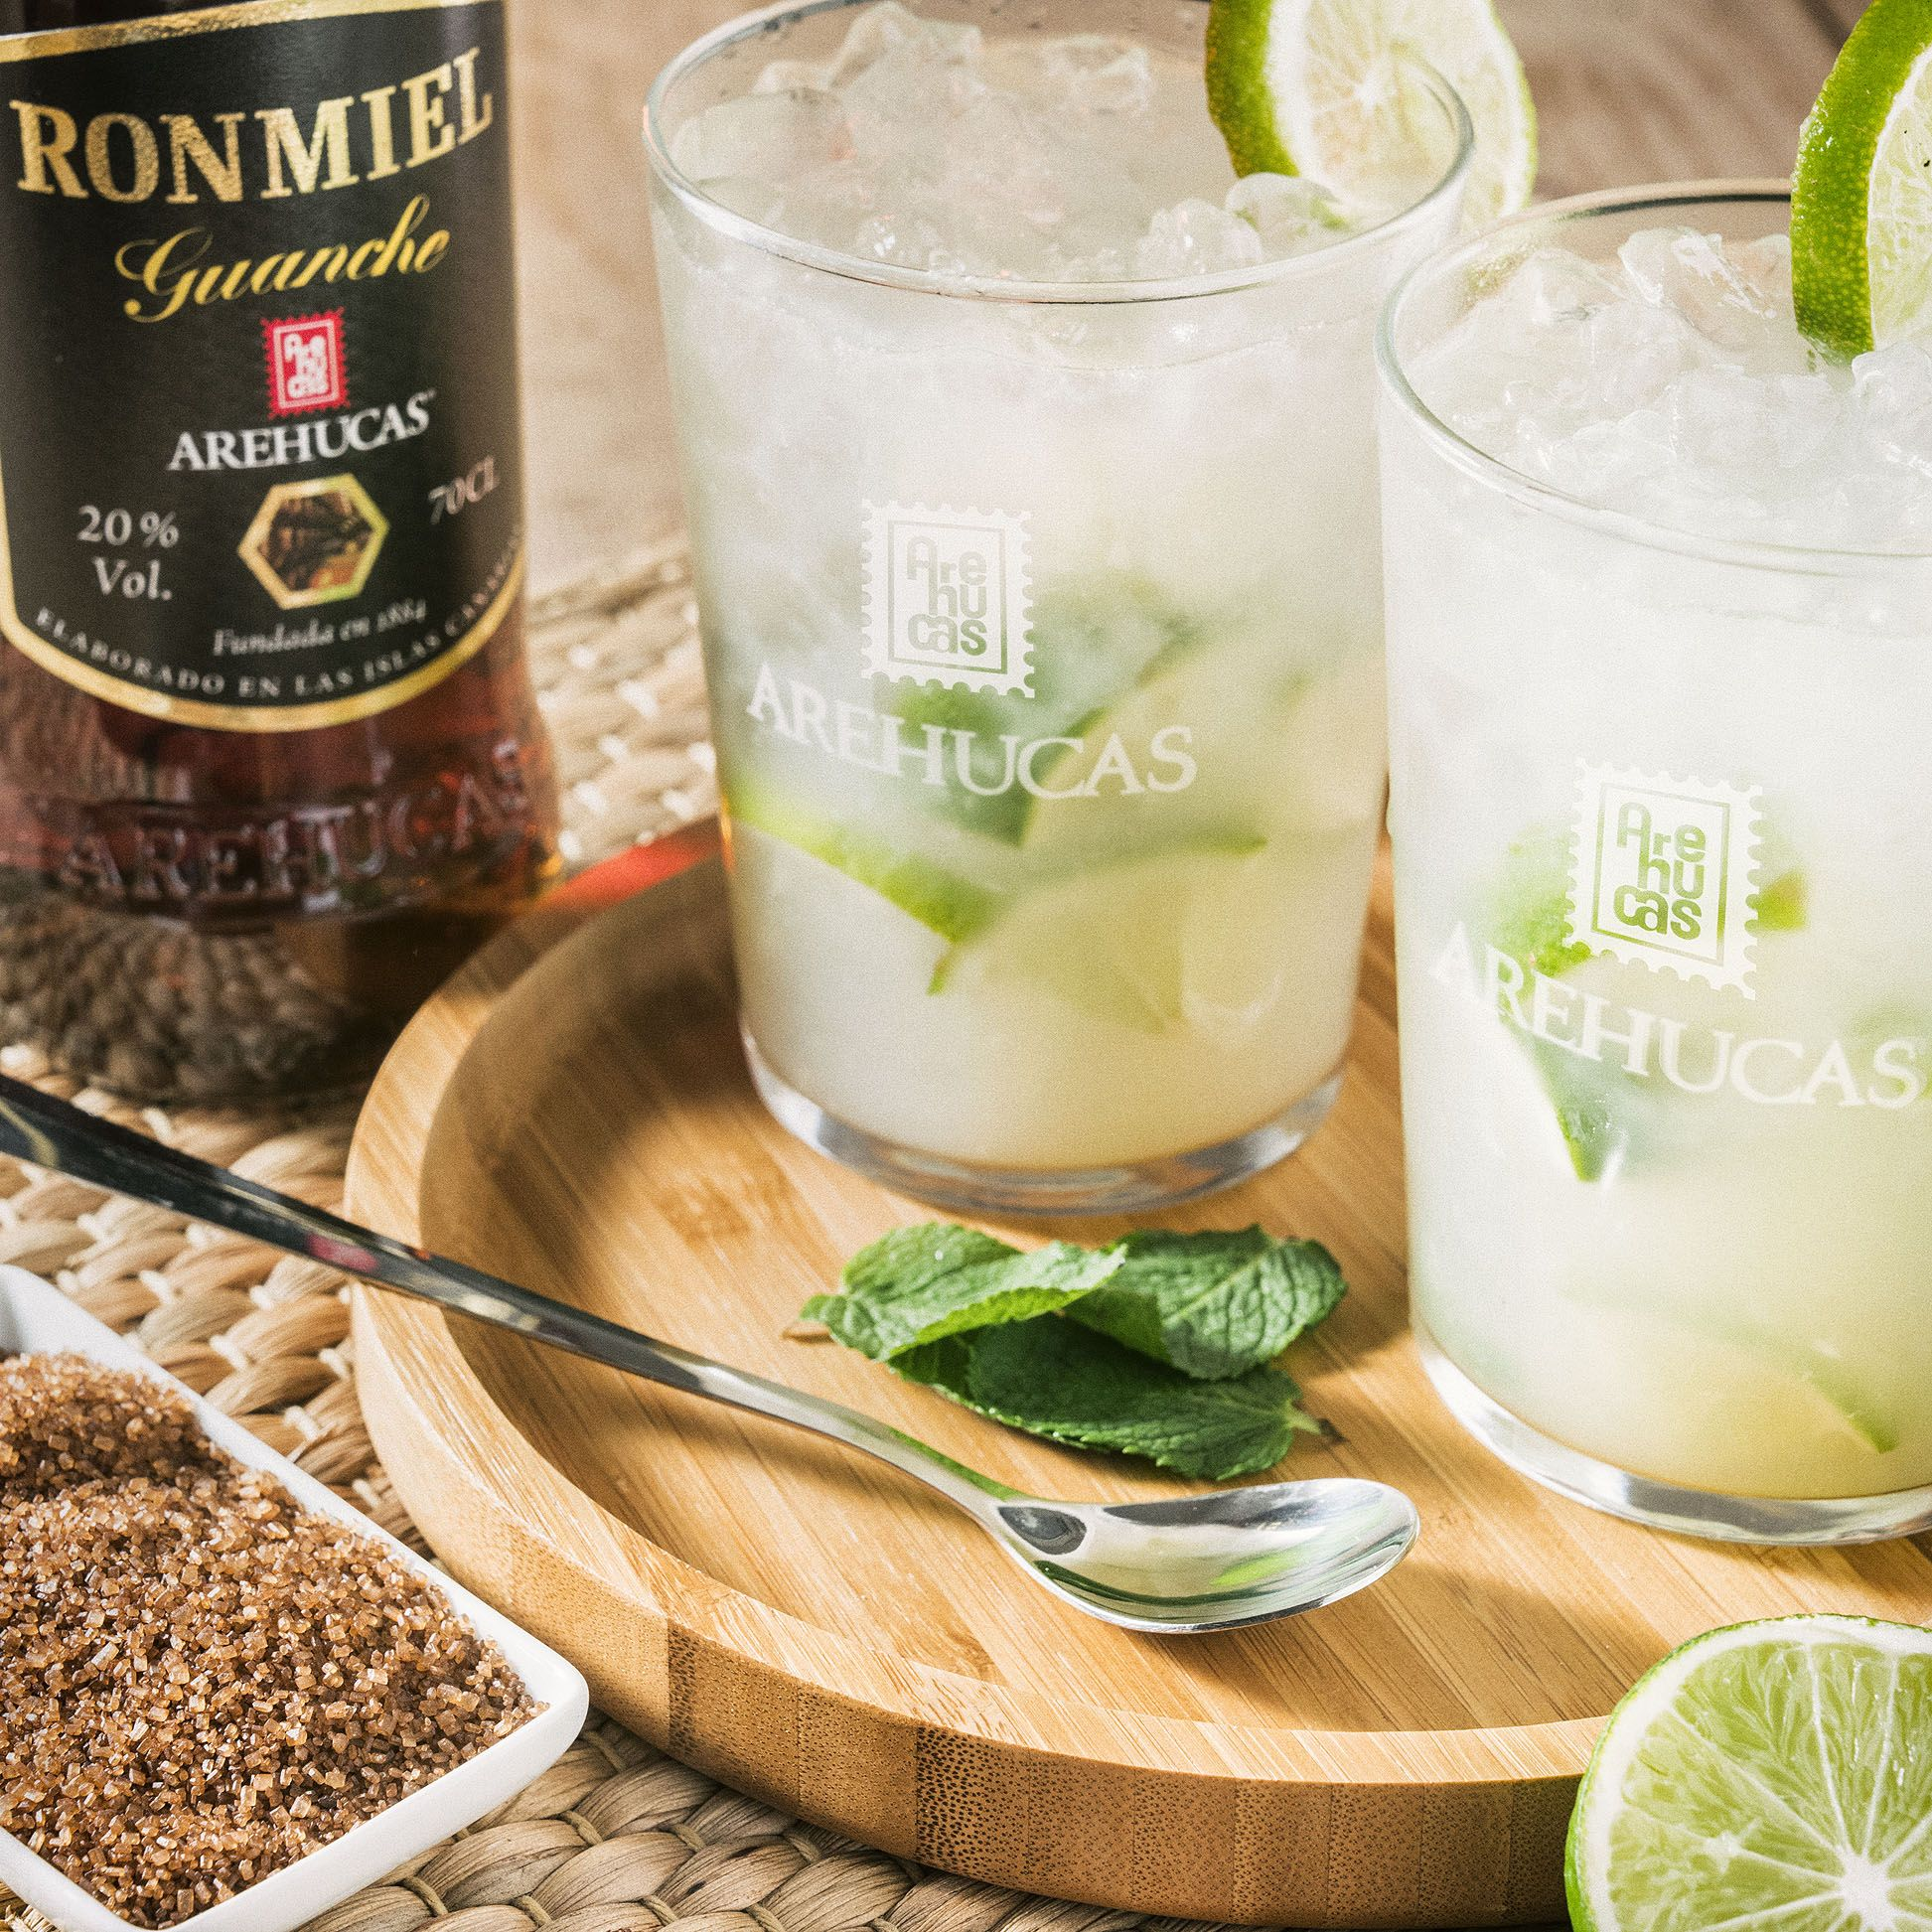 Ron, ginebra, tequila o whisky: Estos cocktails son tendencia